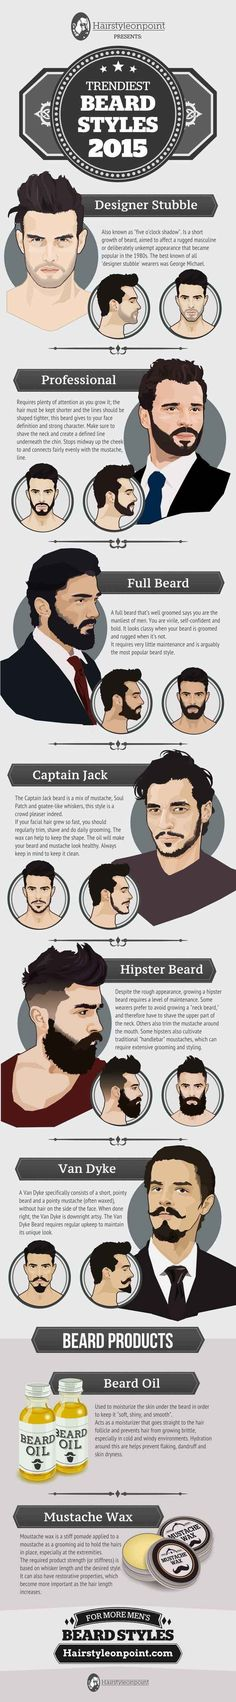 Hairstyleonpoint created a cool chart detailing the latest trends in beards, along with some products to maintain the look.